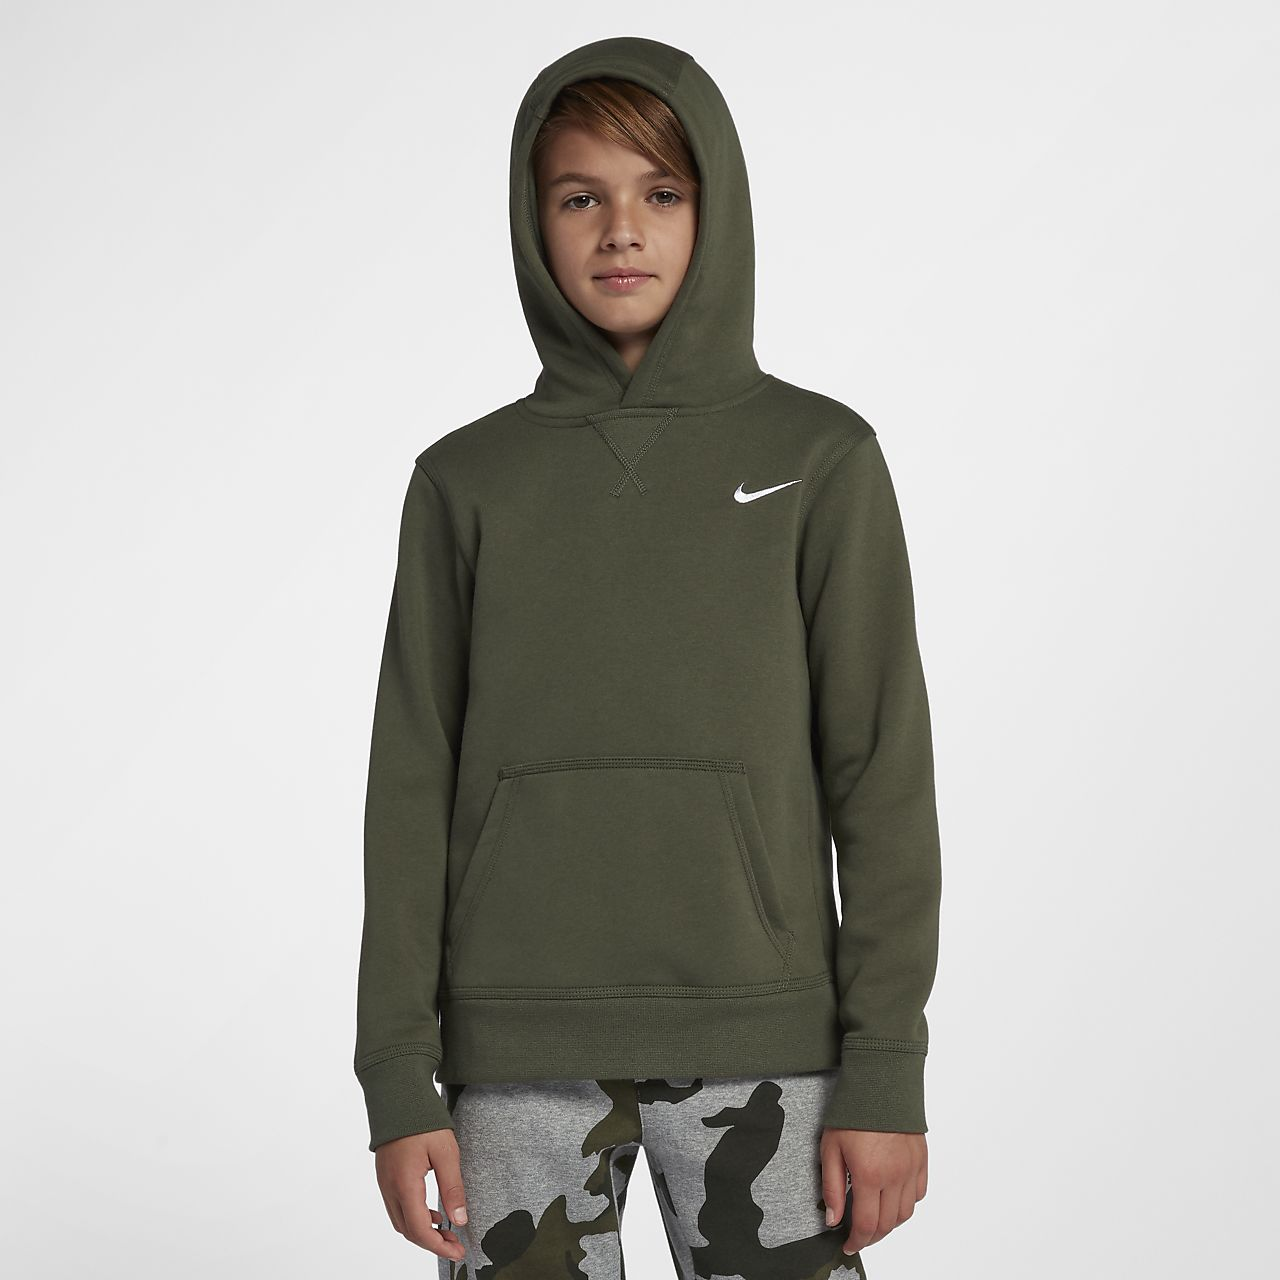 Fr Nike Capuche Sweat Training De Pour À Enfant q0T4awA